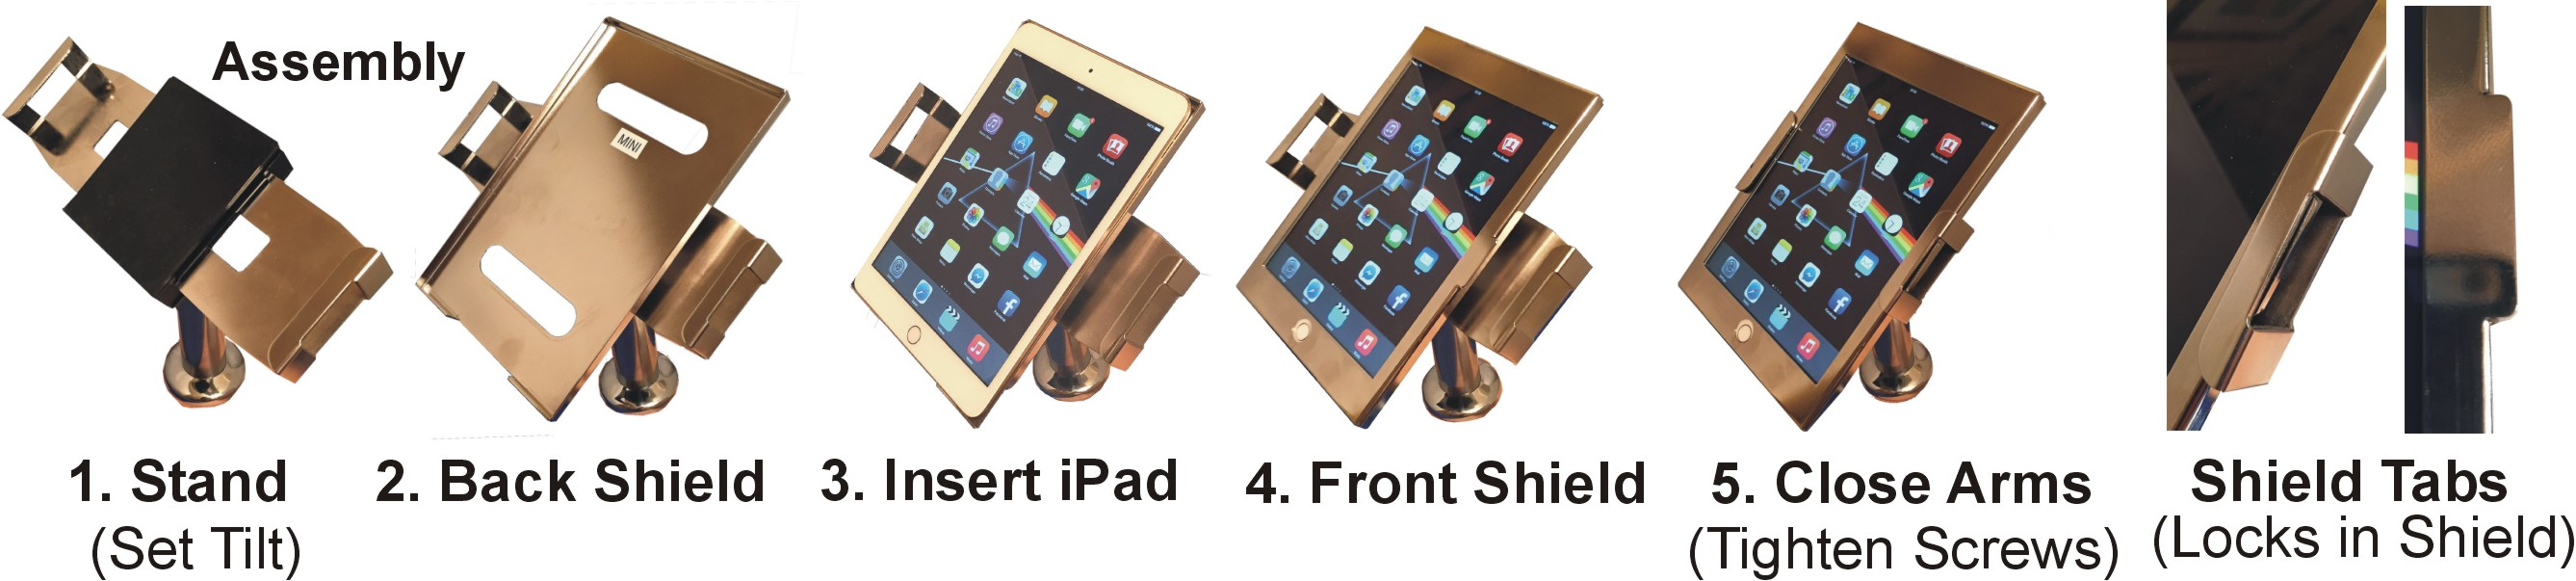 IPad Stand Assembly by pos-security.net